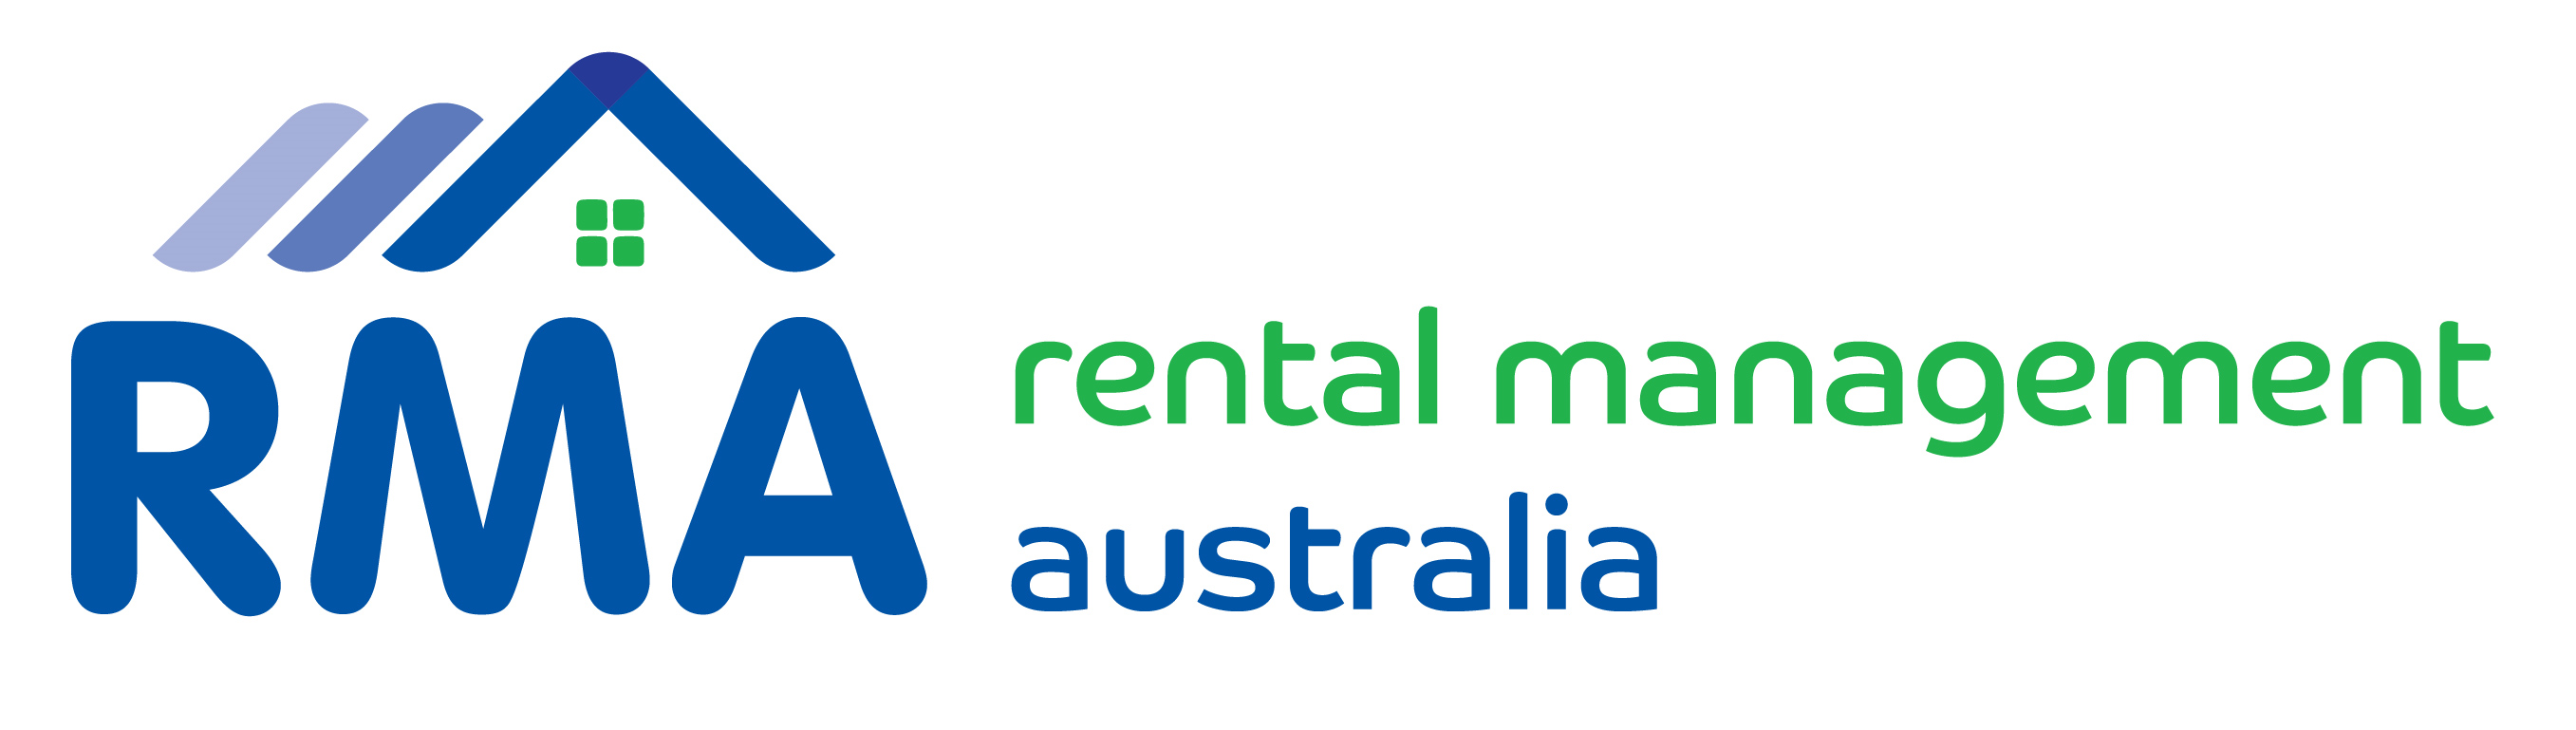 Rental Management Australia - Port Kennedy, Port Kennedy, 6172